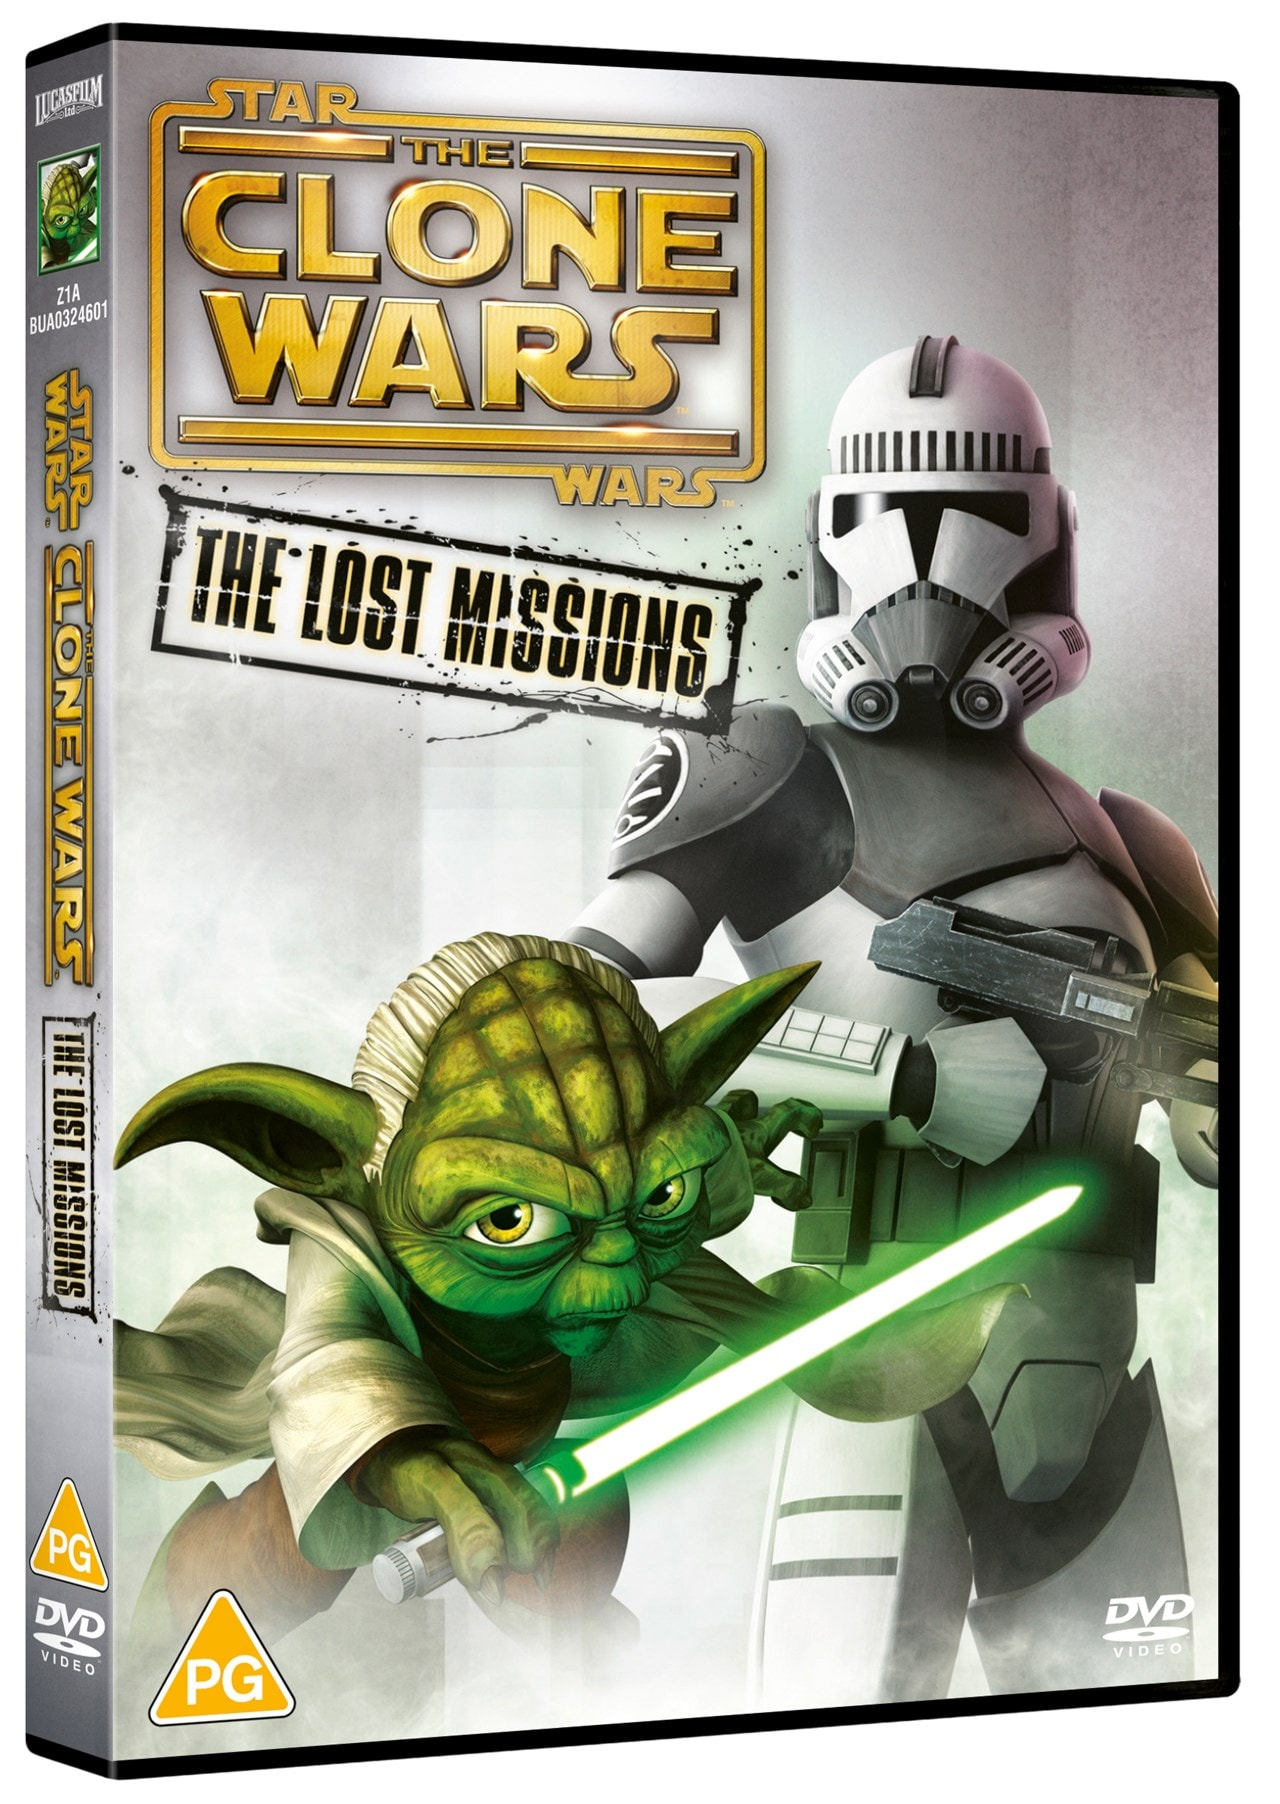 Star Wars - The Clone Wars: The Lost Missions - 2